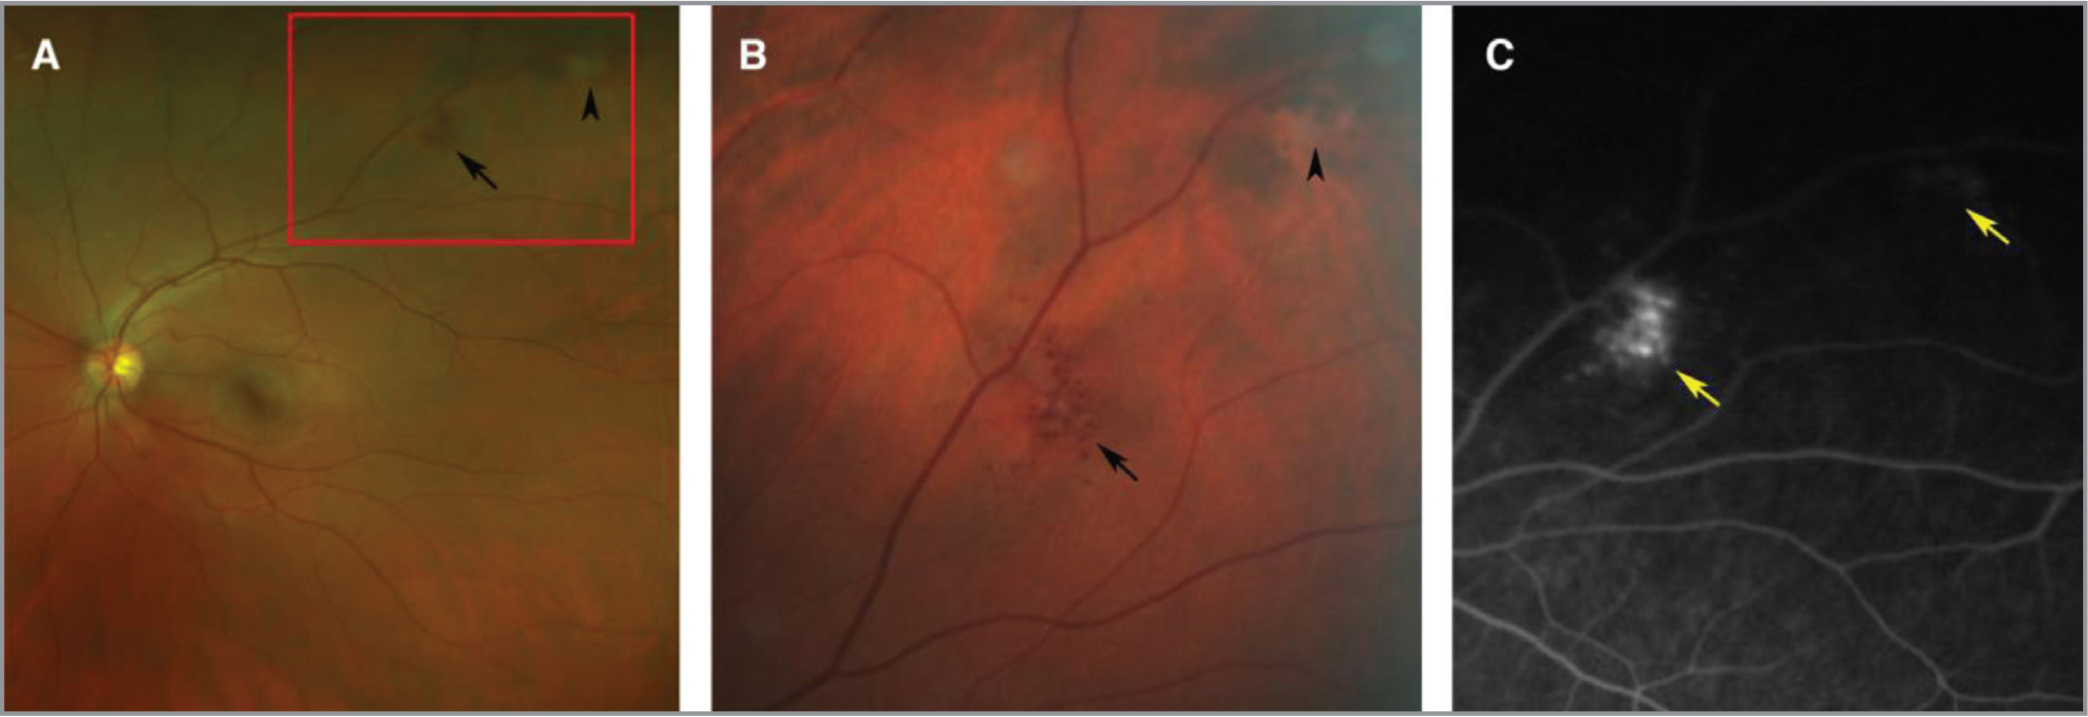 Clinical images of a retinal cavernous hemangioma. (A) Widefield fundus photography shows two peripheral lesions along the superior arcade in the left eye. (B) Closer inspection reveals a cluster of saccular aneurysms (black arrow), as well as a more distal lesion with an overlying gray-white fibrotic membrane (black arrowhead). (C) A late frame of the fluorescein angiogram demonstrates punctate staining of the aneurysms (yellow arrows) without overt leakage.